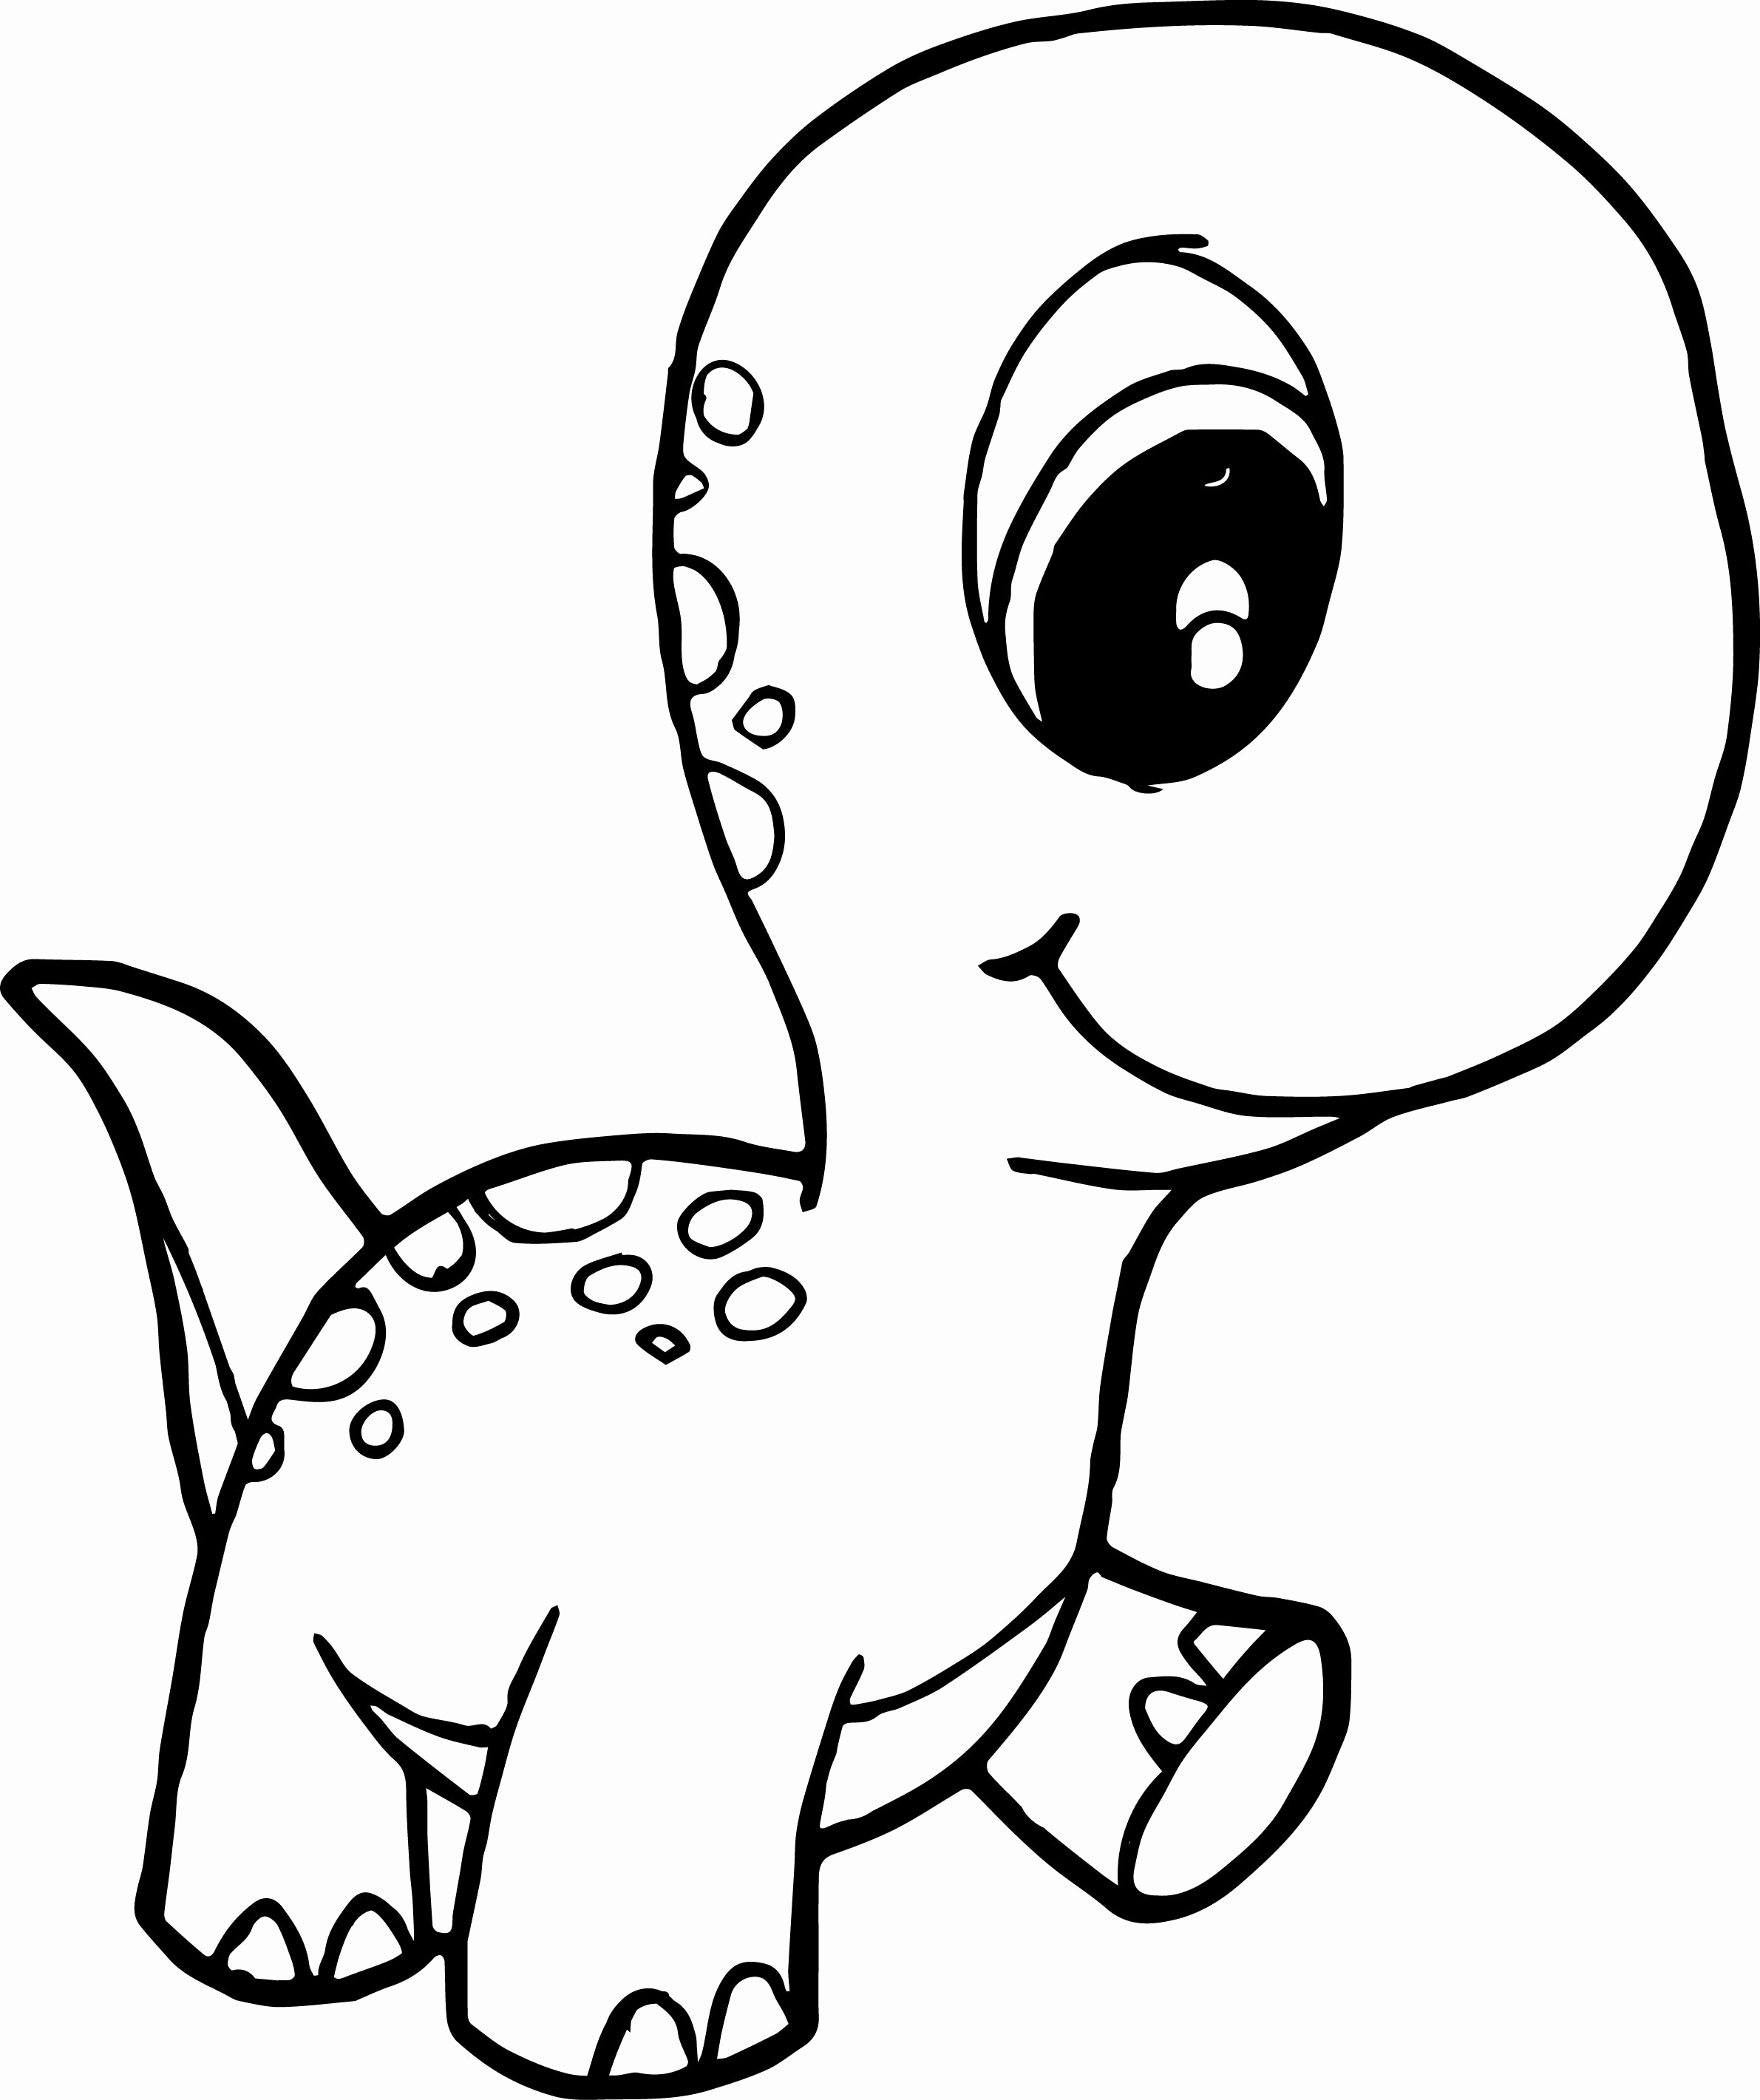 Baby Dragon Drawing At Getdrawings Com Free For Personal